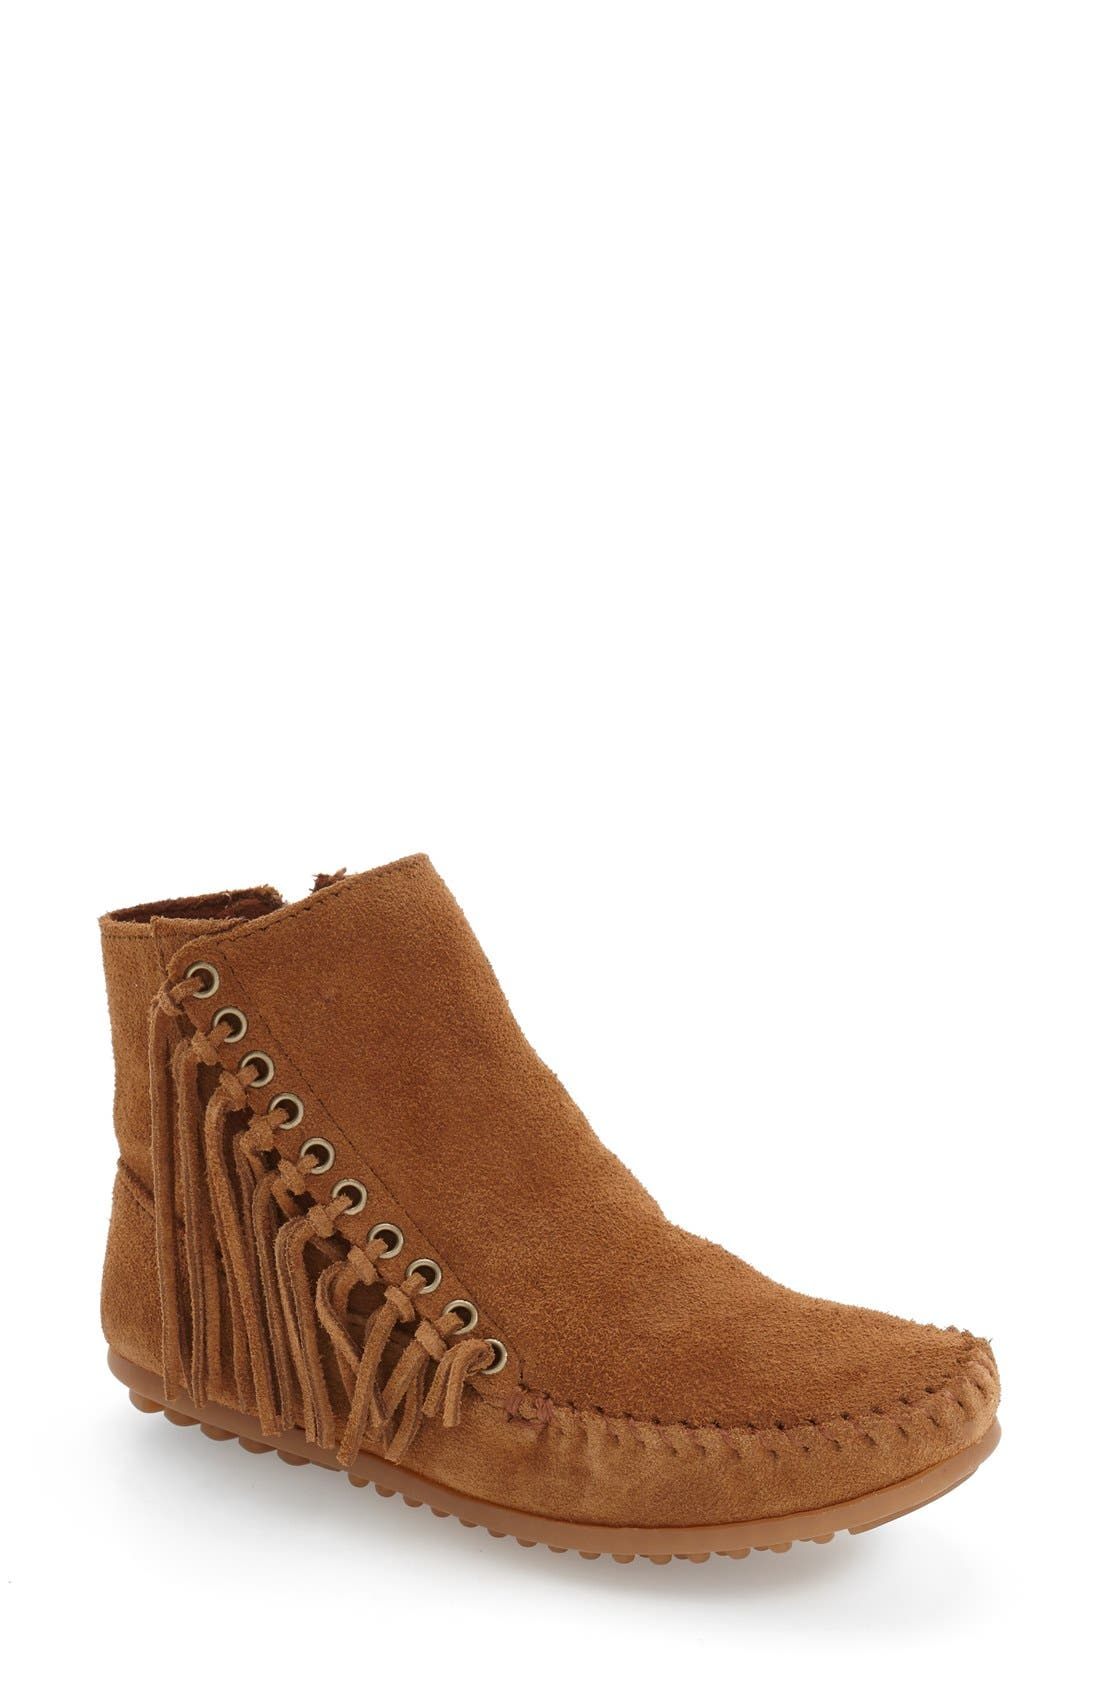 'Willow' Fringe Bootie,                             Main thumbnail 1, color,                             211